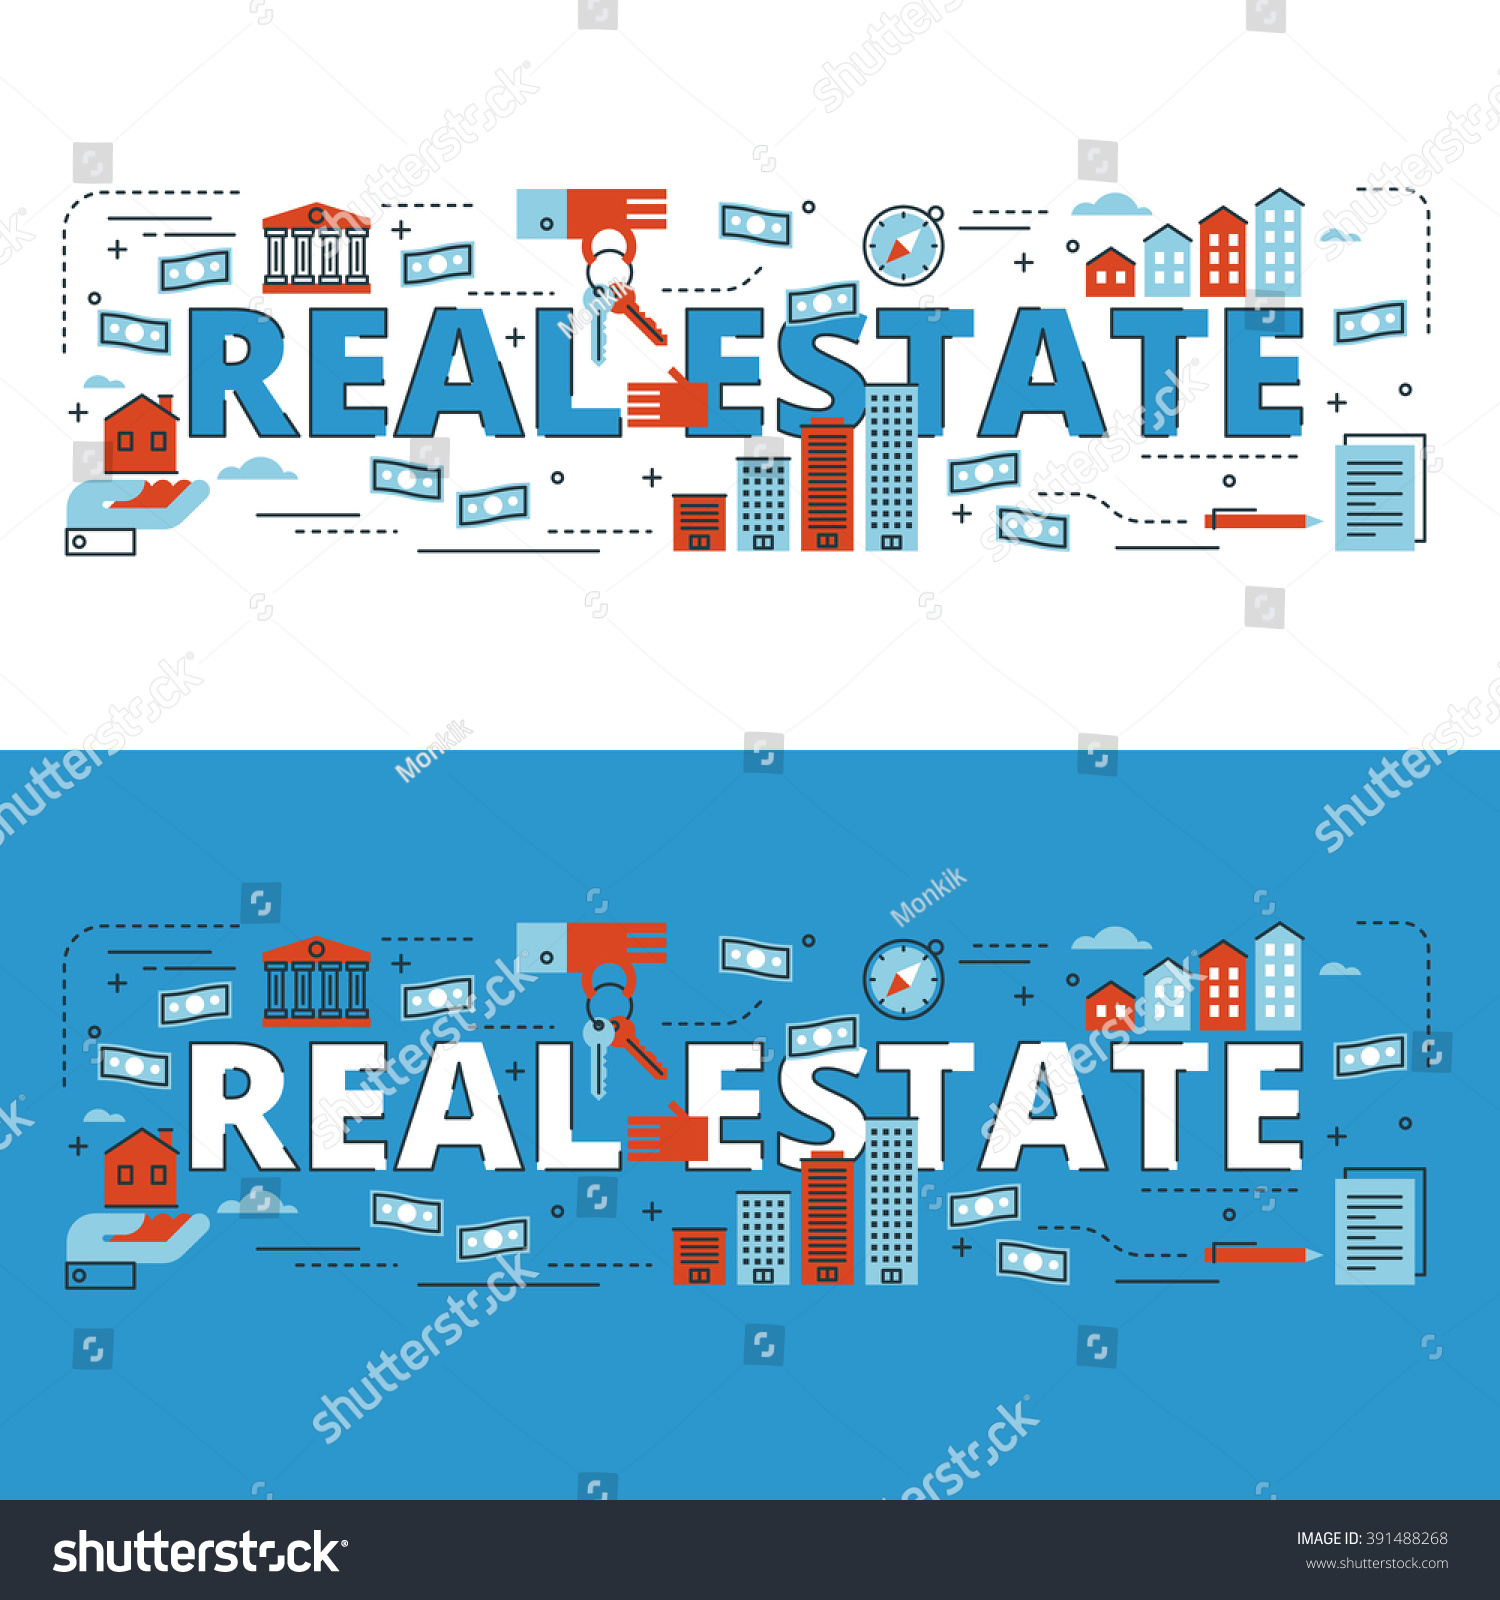 Real Estate Book Cover Design : Real estate lettering flat line design with icons and